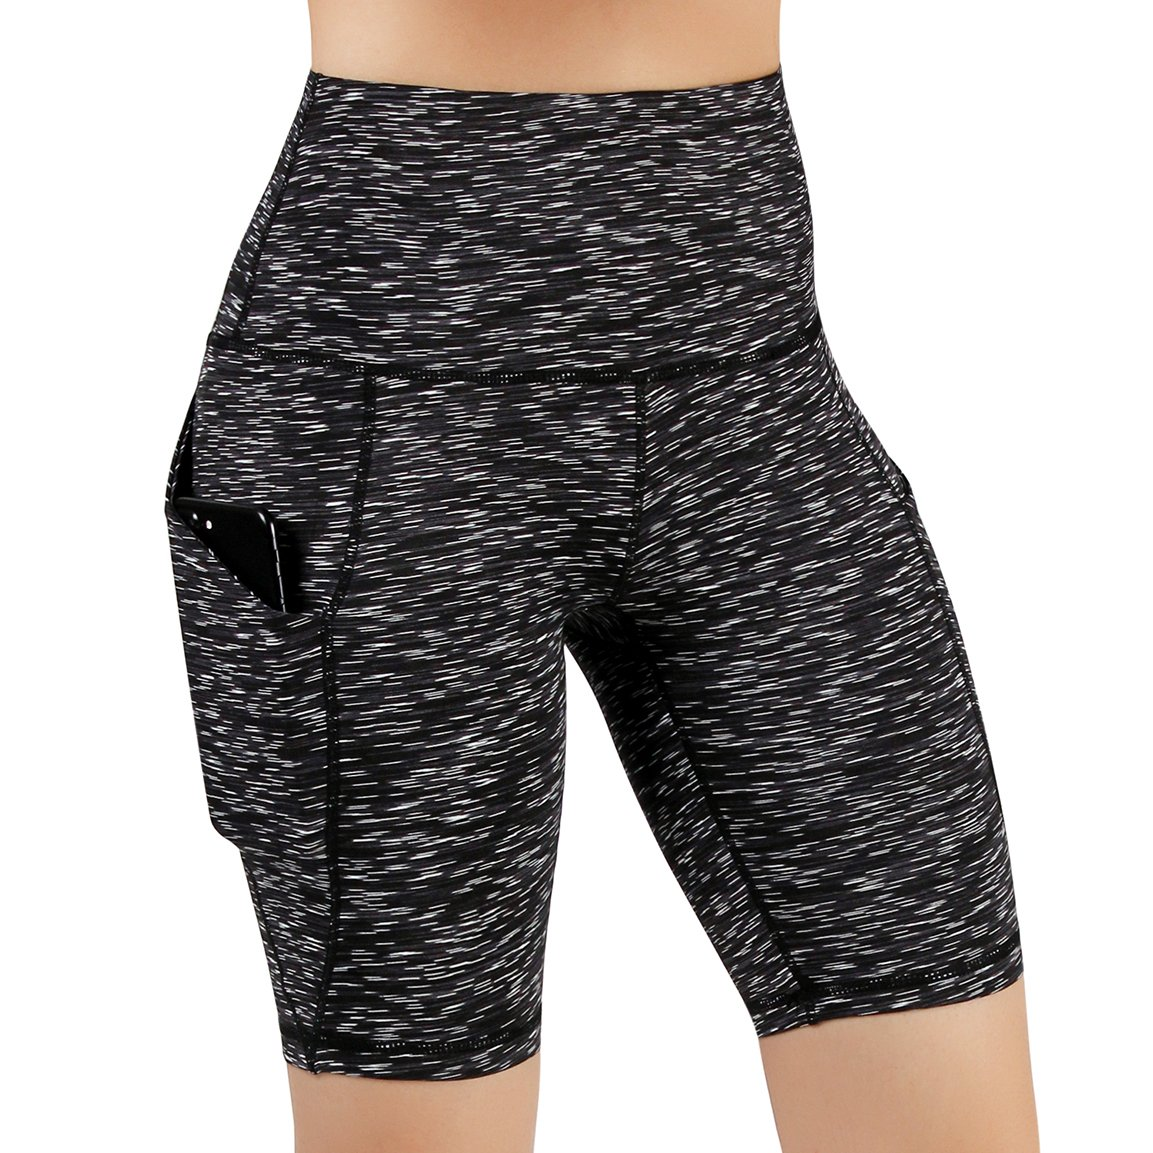 ODODOS High Waist Out Pocket Yoga Short Tummy Control Workout Running Athletic Non See-Through Yoga Shorts,SpaceDyeMattBlack,XX-Large by ODODOS